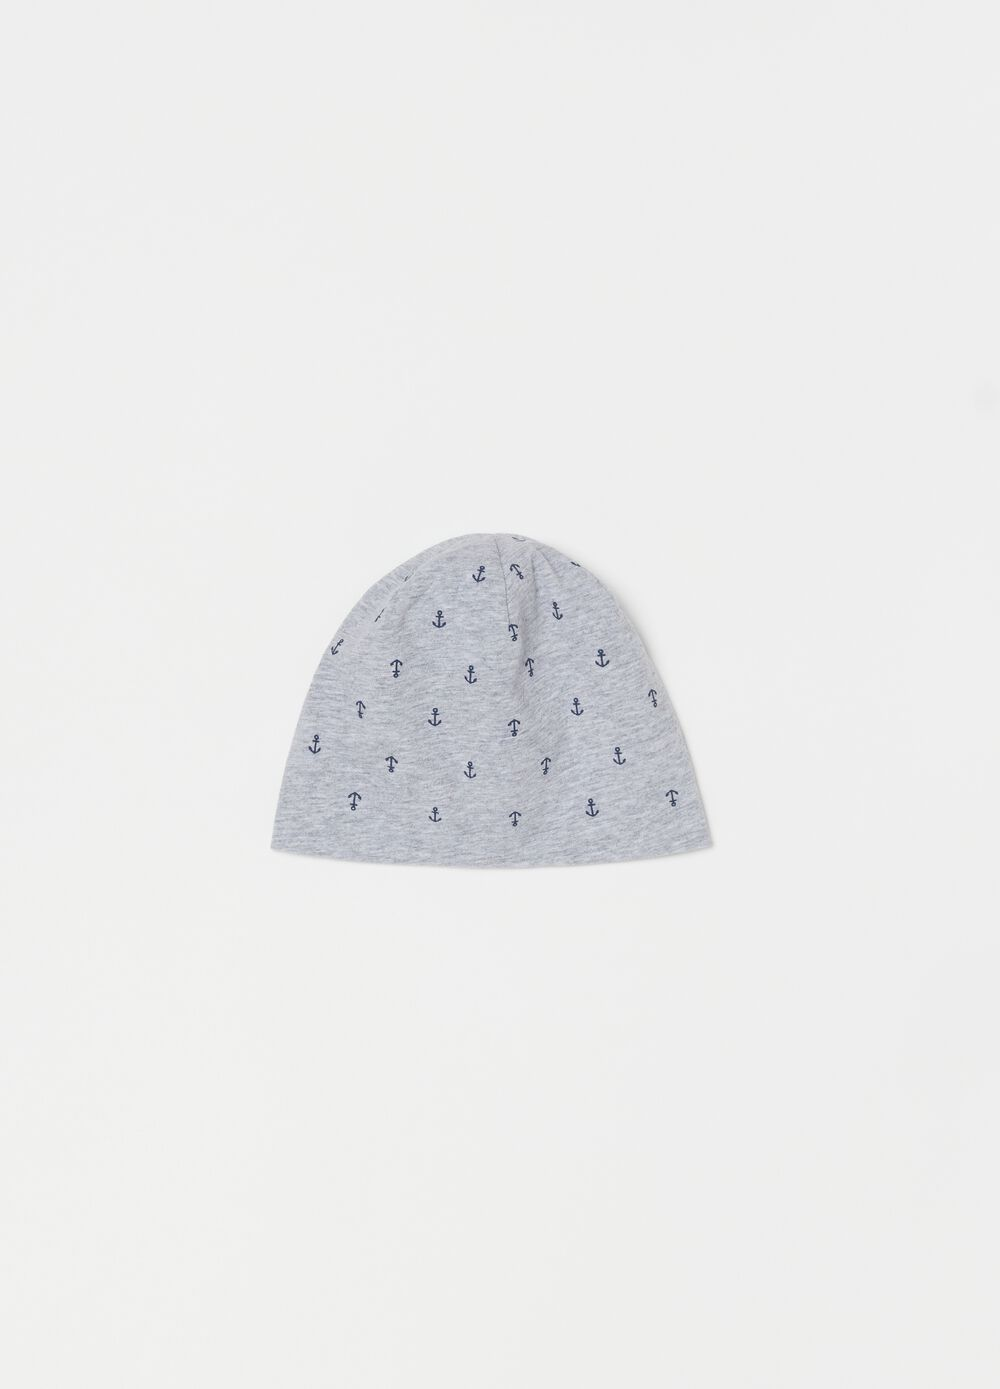 Jersey hat with anchor pattern